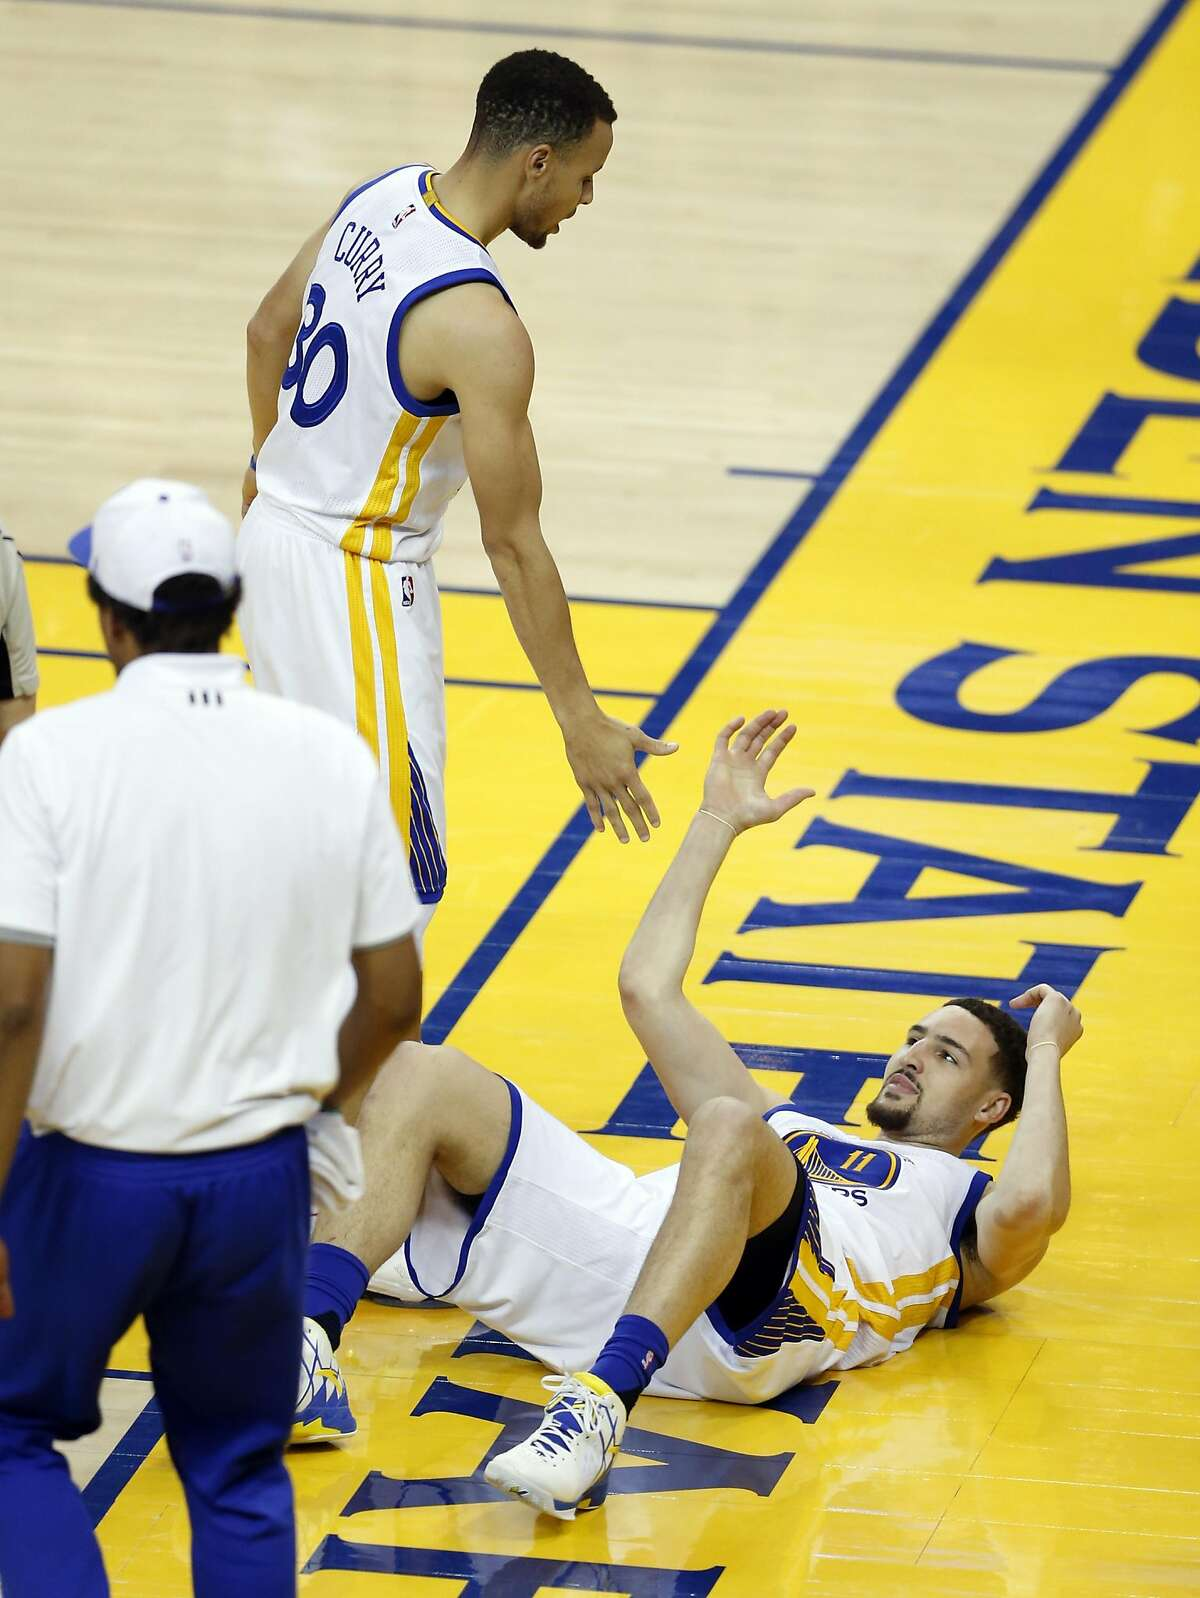 Golden State Warriors' Klay Thompson is helped up by Stephen Curry in 3rd quarter against San Antonio Spurs during NBA game at Oracle Arena in Oakland, Calif., on Thursday, April 7, 2016.